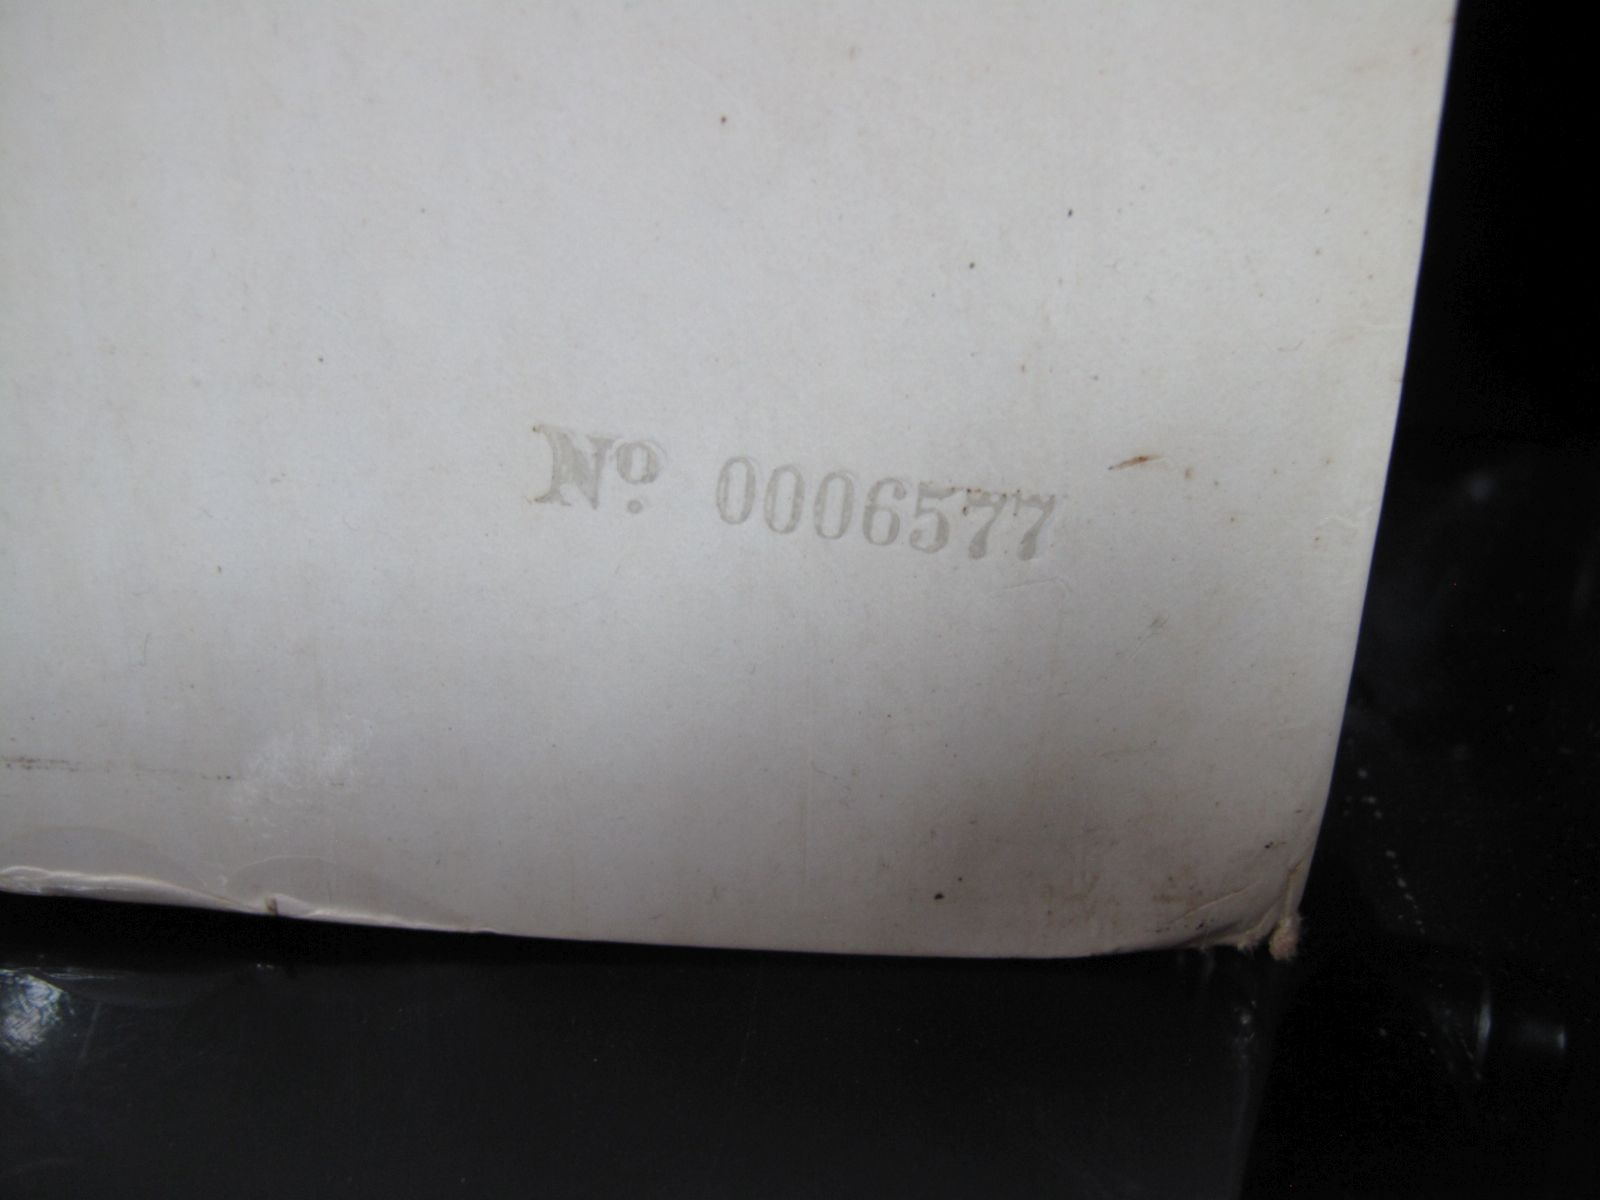 Lot 55 - Beatles 'White Album' LP 1968 Apple, PMC 7067/8, 1st press top loader, with EARLY NUMBER on